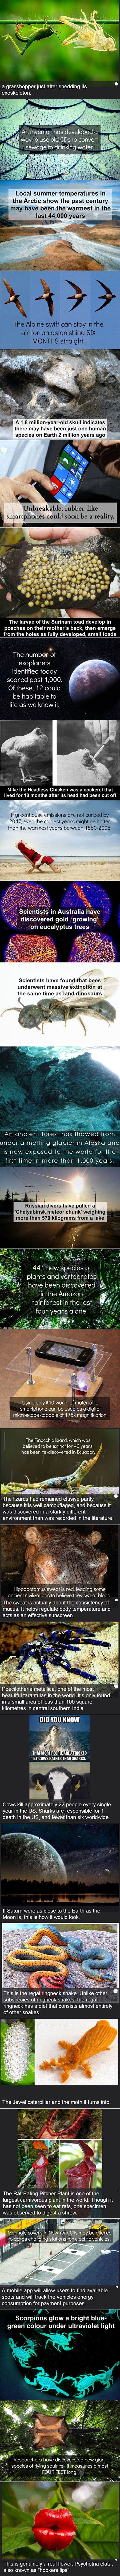 Here are some fun and fascinating science facts that might surprise you